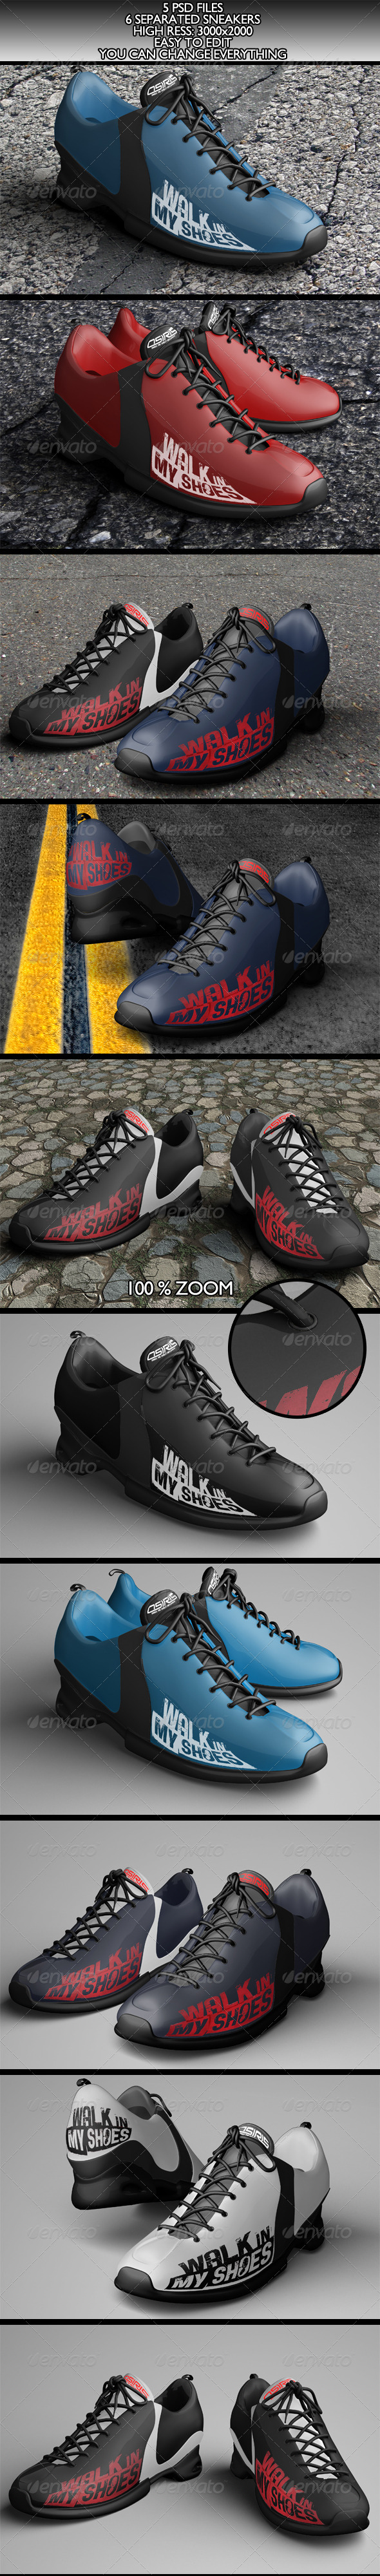 GraphicRiver 6 Realistic Sneakers Mock-Ups Vol.1 6061541